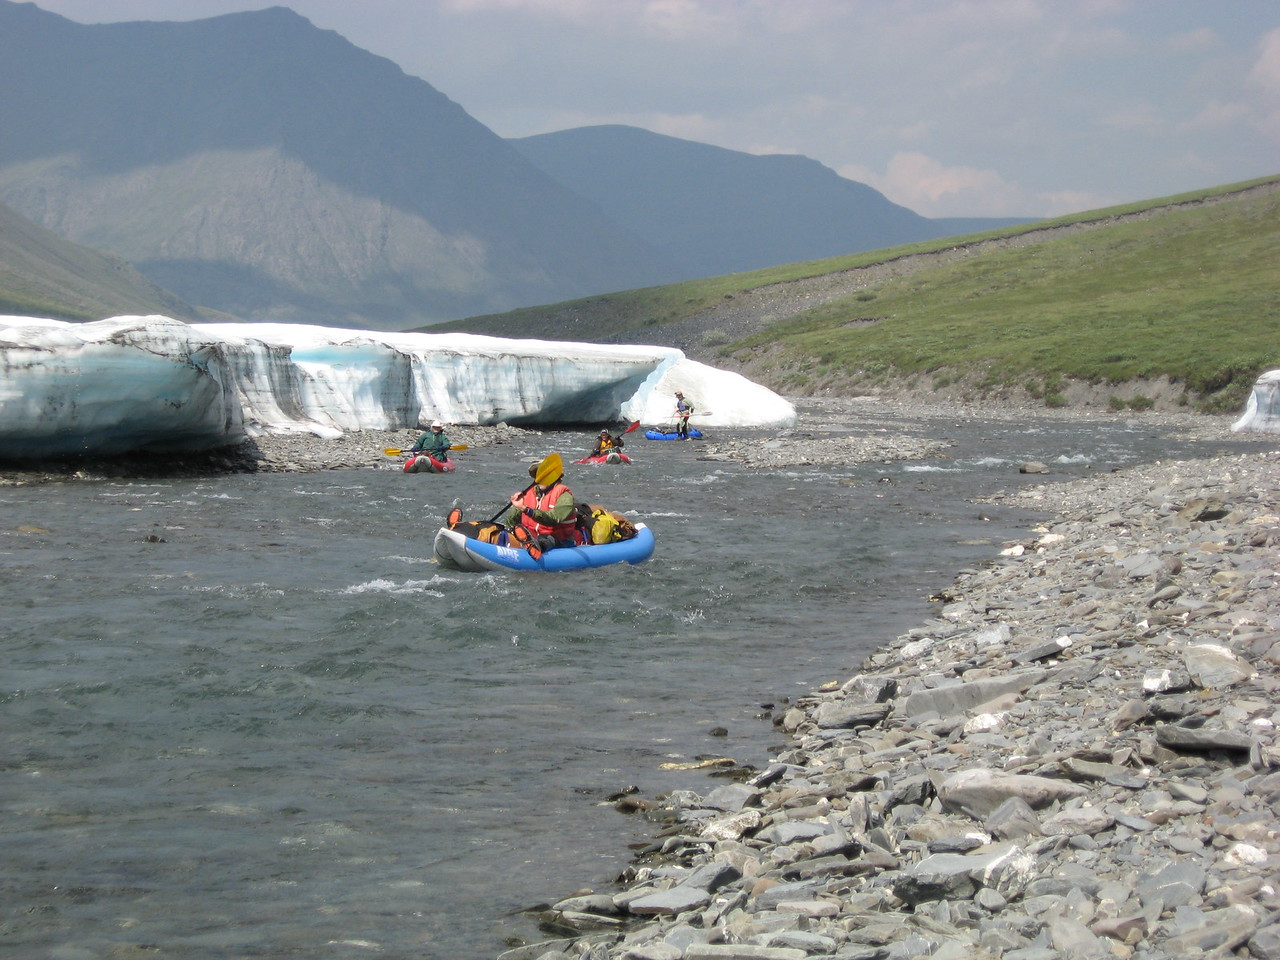 Day 2, River - More Boat Dragging